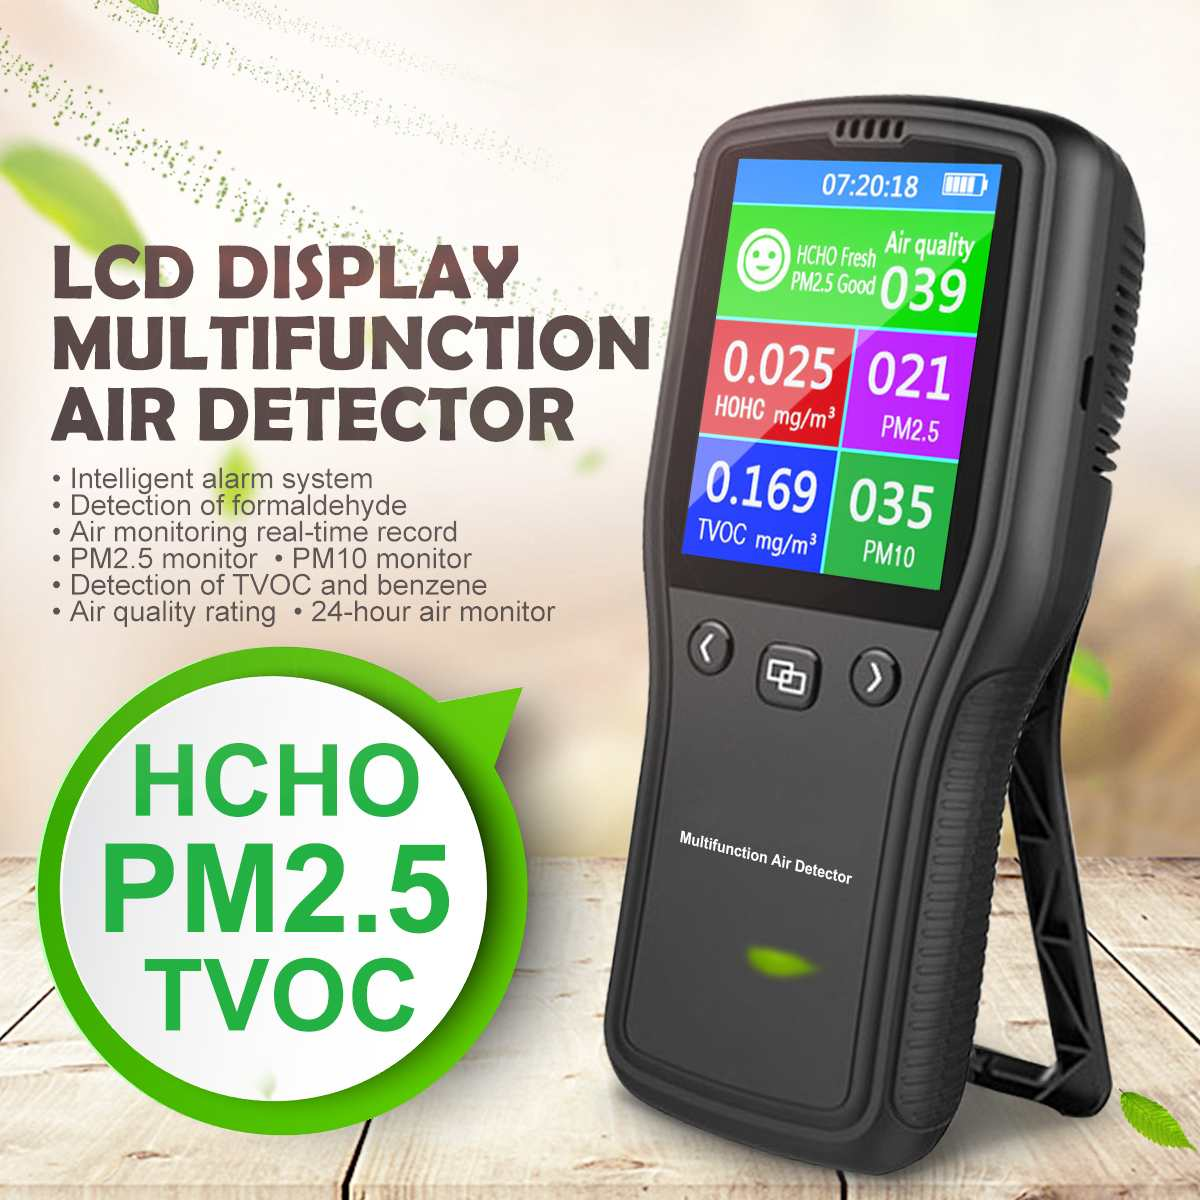 Mini PM2.5 Air Detector Air Quality Monitor Digital Tester Appliance For Monitor Formaldehyde TVOC PM2.5 PM10 HCHO Gas Analyzer